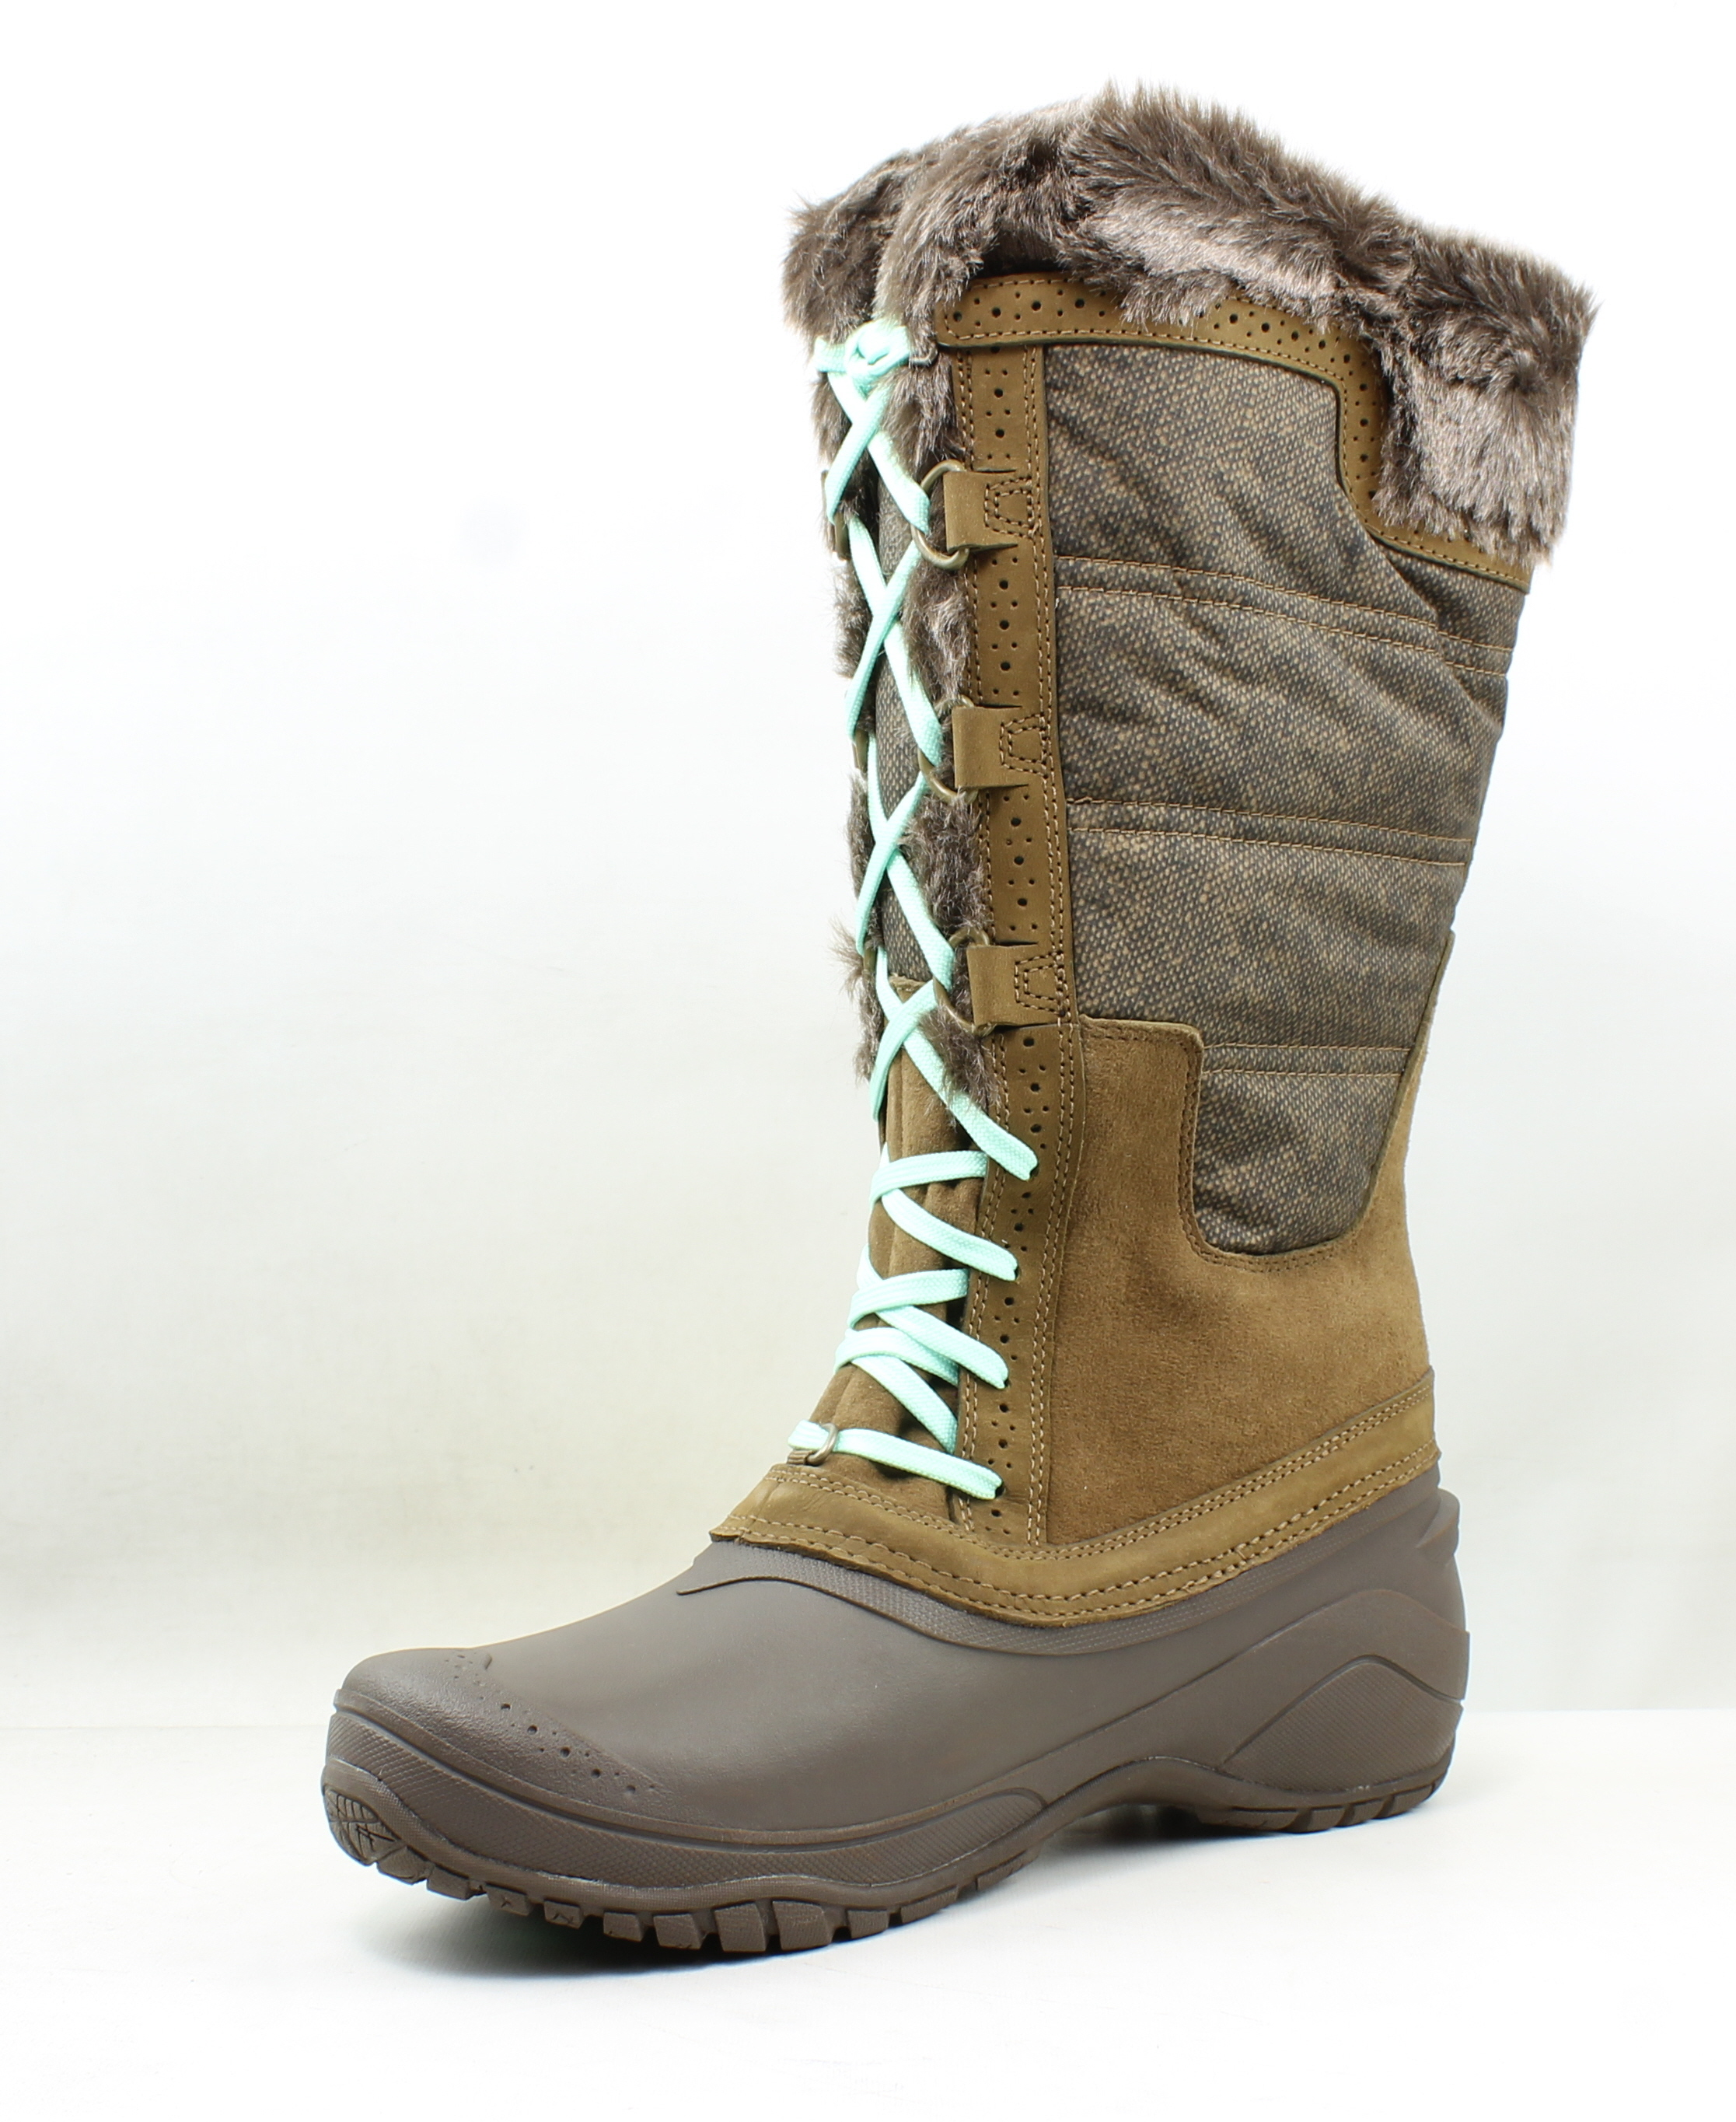 thumbnail 3 - The North Face Womens Shellista II Tall Snow Boots